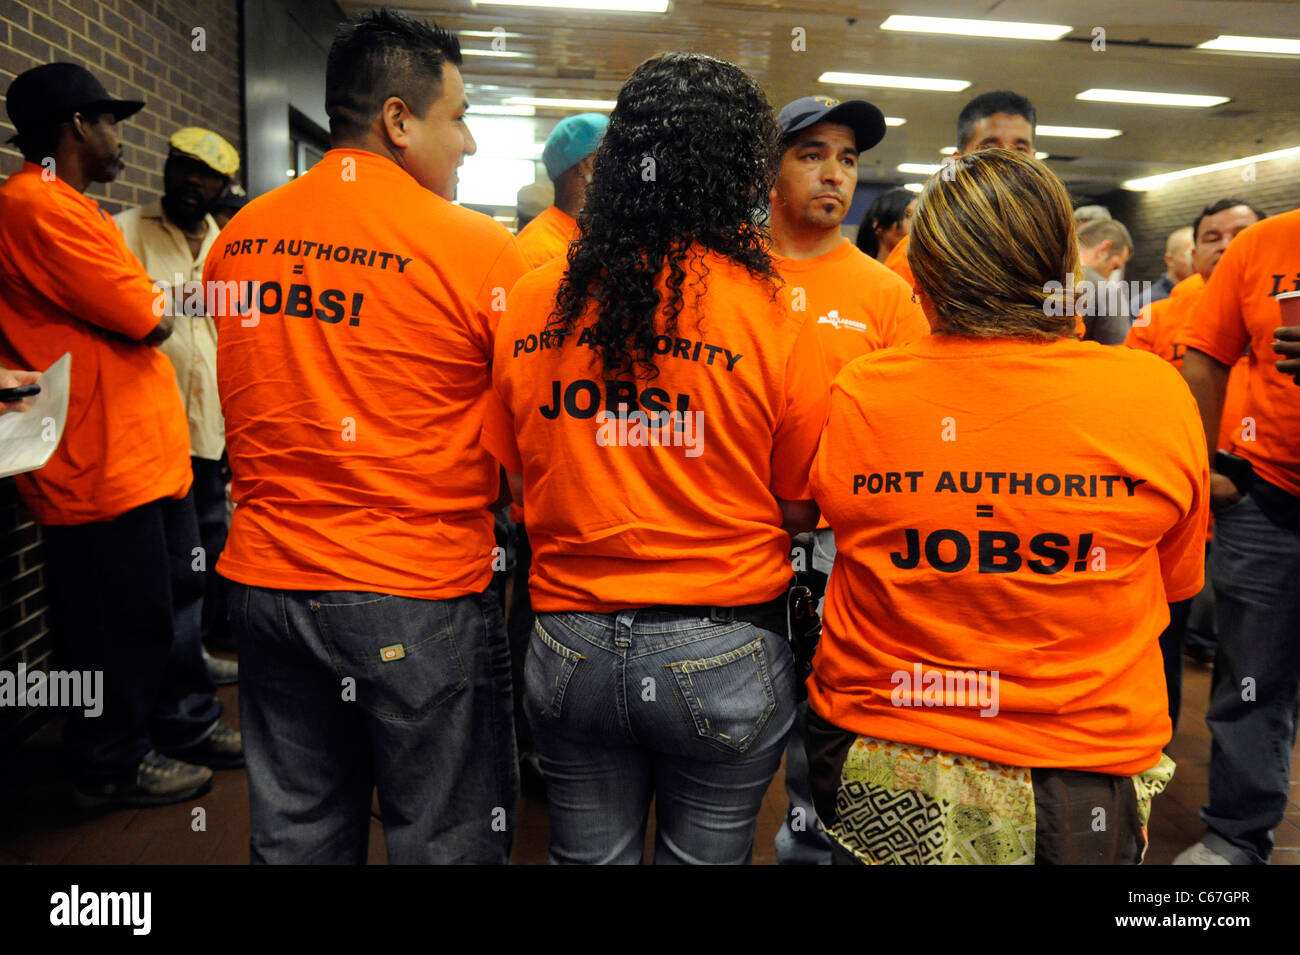 Port Authority of New York and New Jersey fare and toll hike hearings on August 16, 2011. - Stock Image